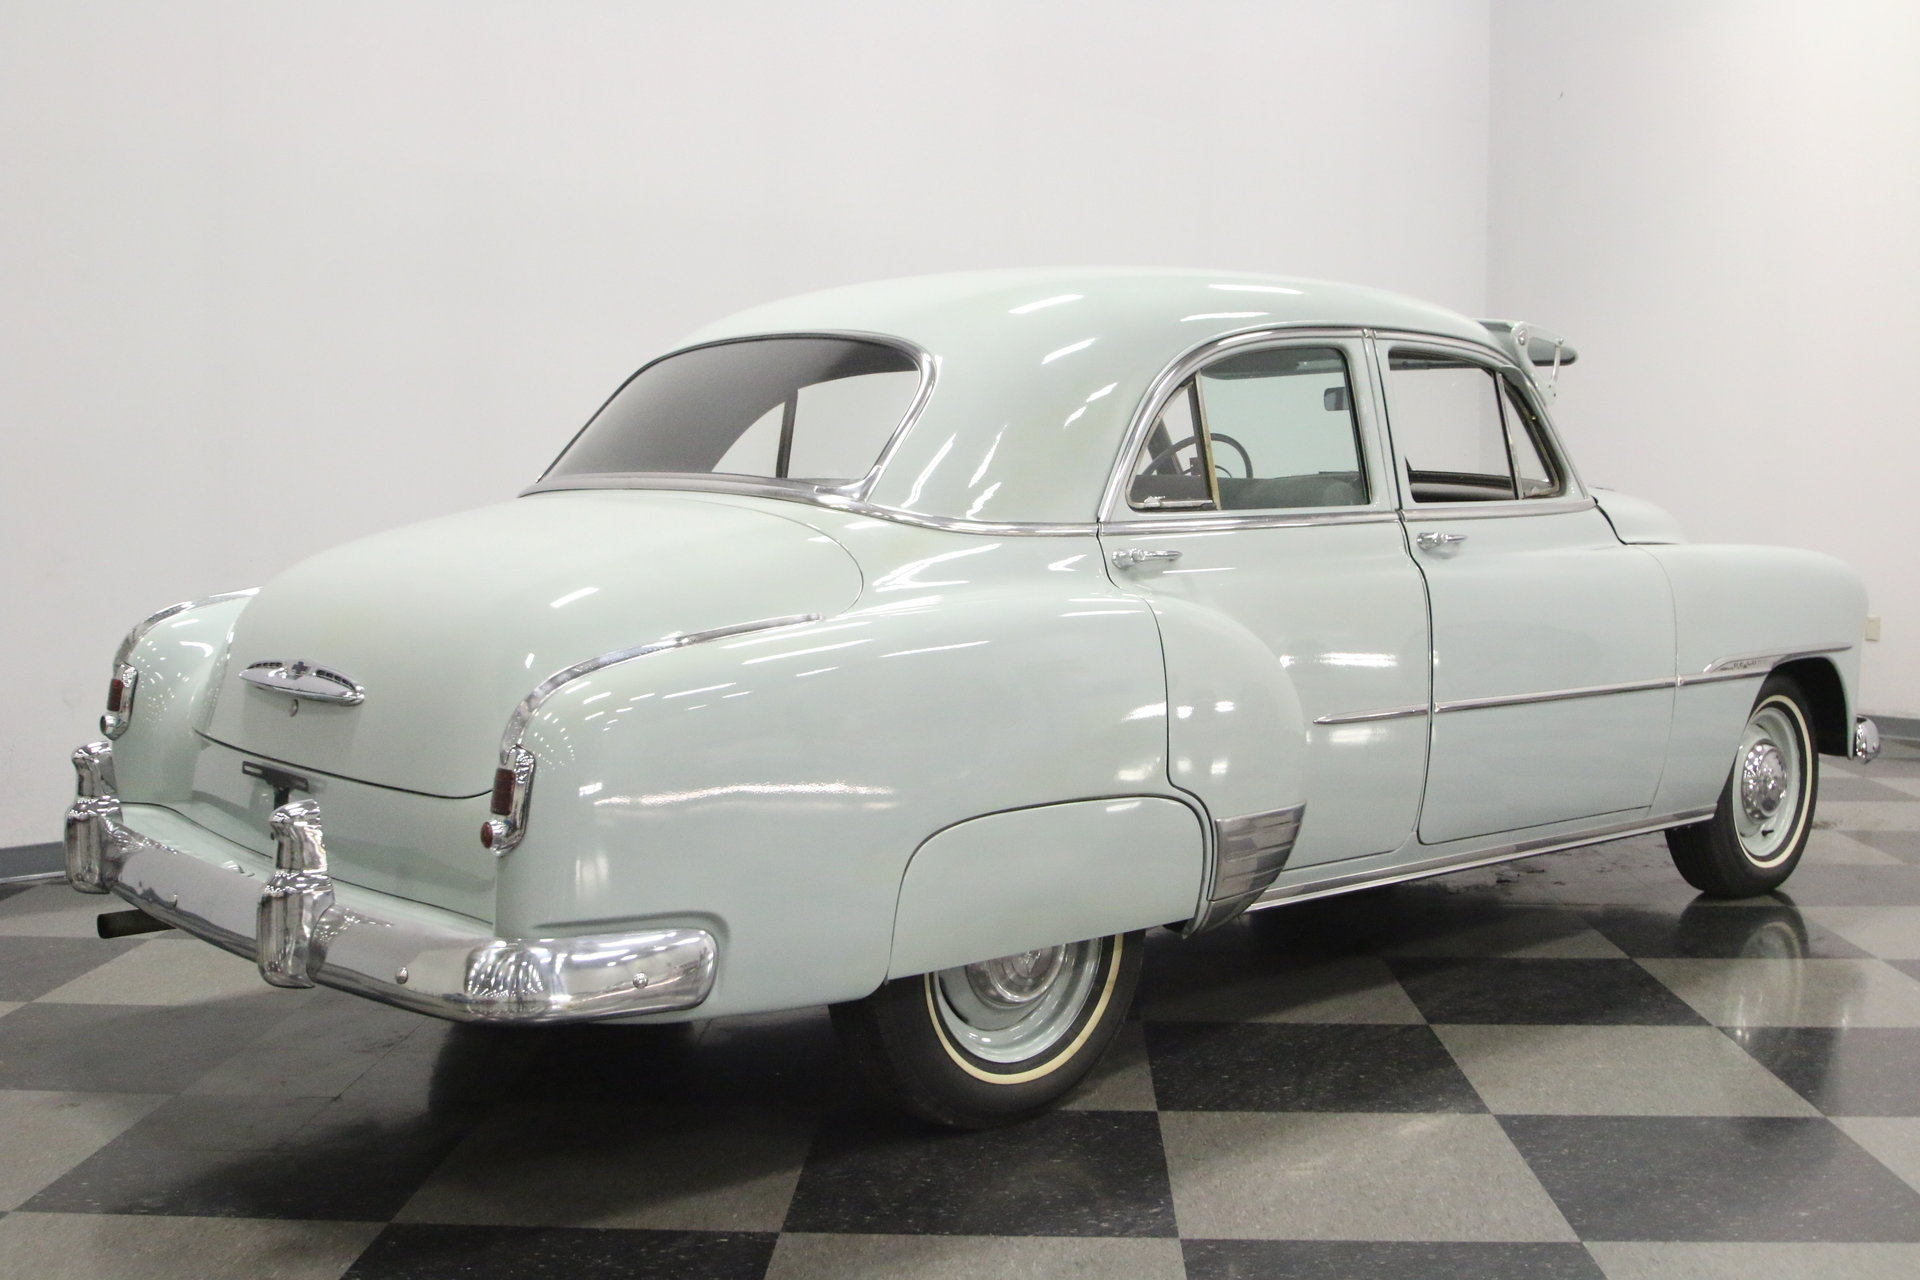 1951 Chevrolet Deluxe Streetside Classics The Nations Trusted Paint Colors View 360